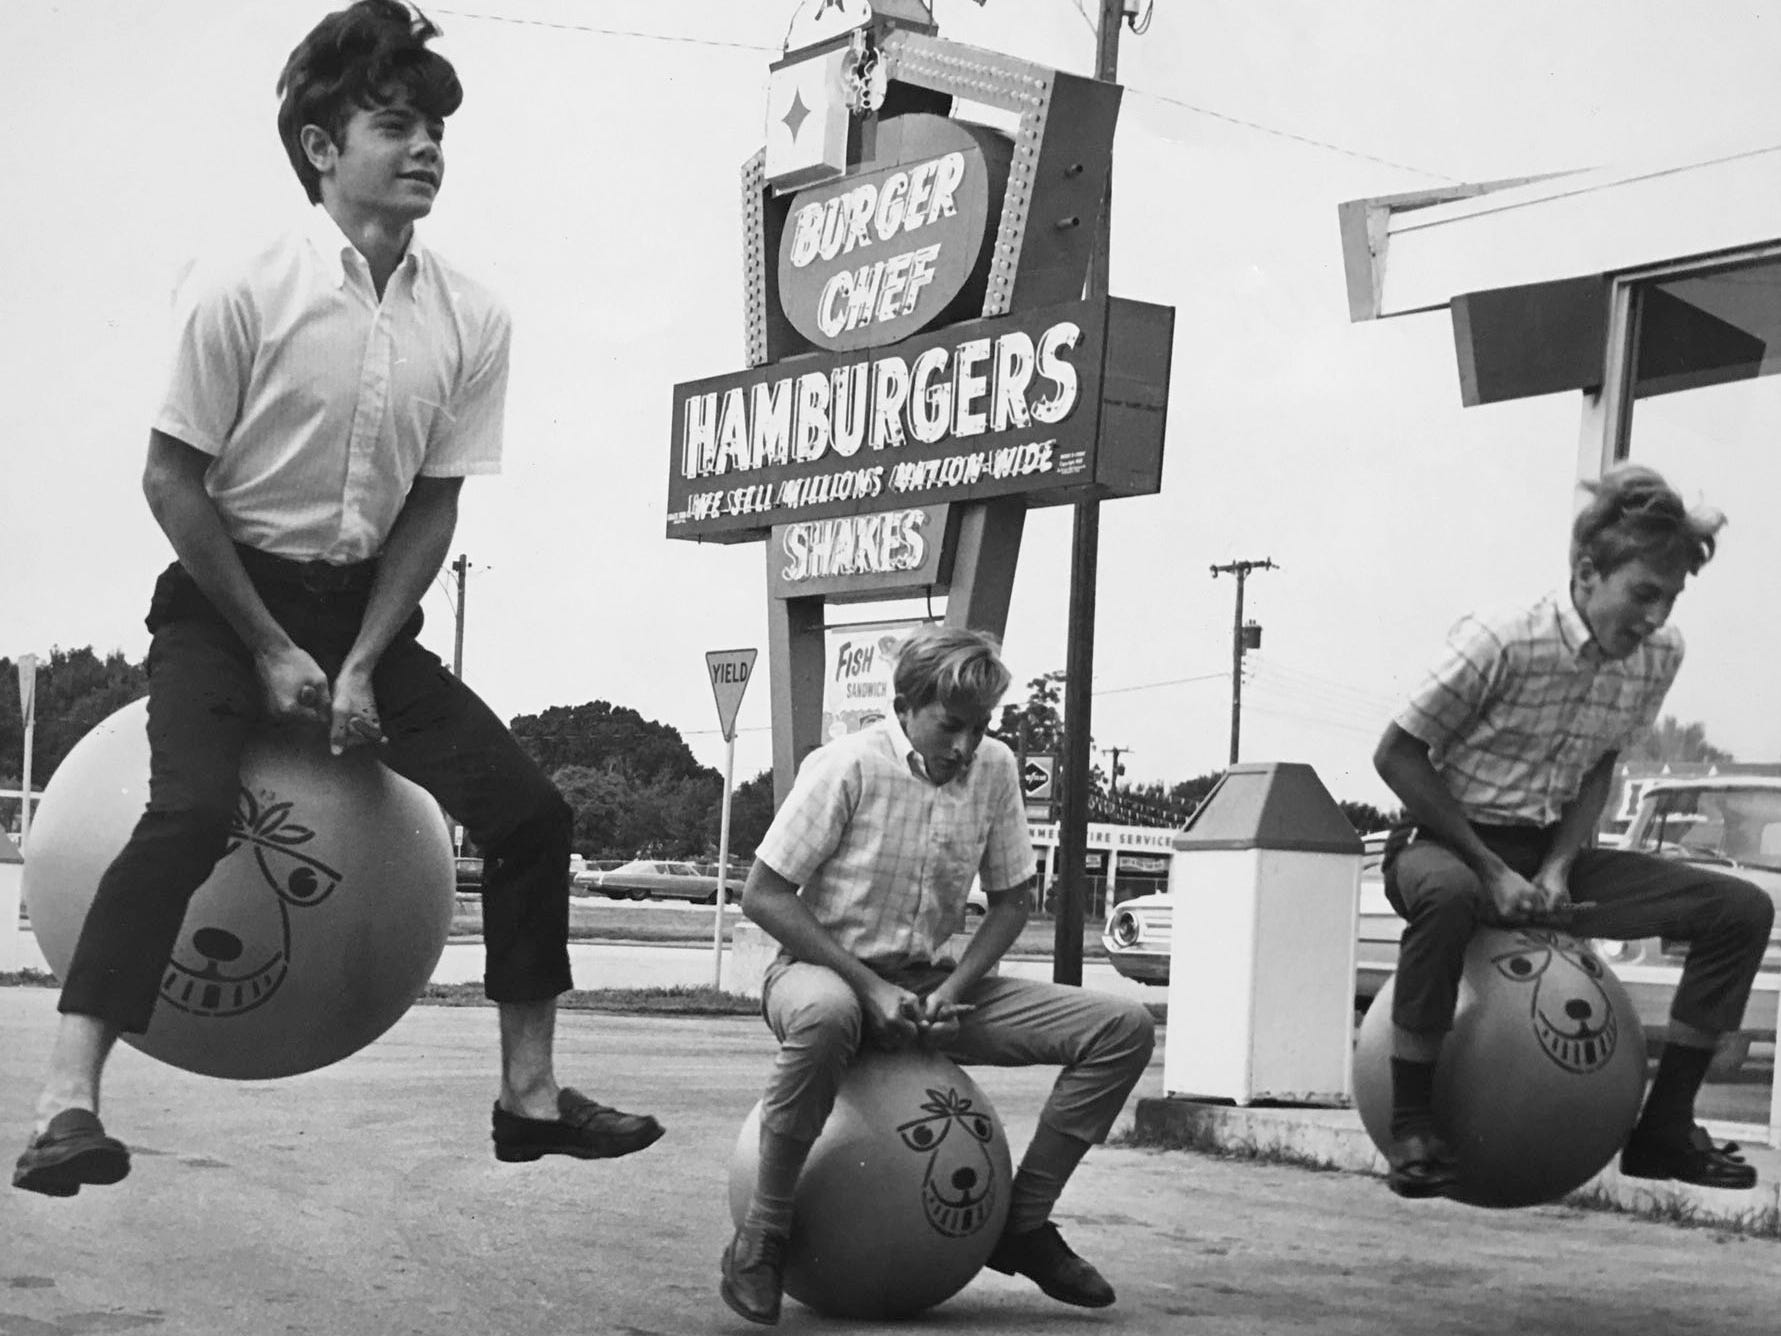 "These boys seem to have more than hamburgers on their minds in 1969 as they bounce past the old Burger Chef on Miracle Mile in Vero Beach. Their antics typified the ""Pogoball"" craze that was the rage at the time."